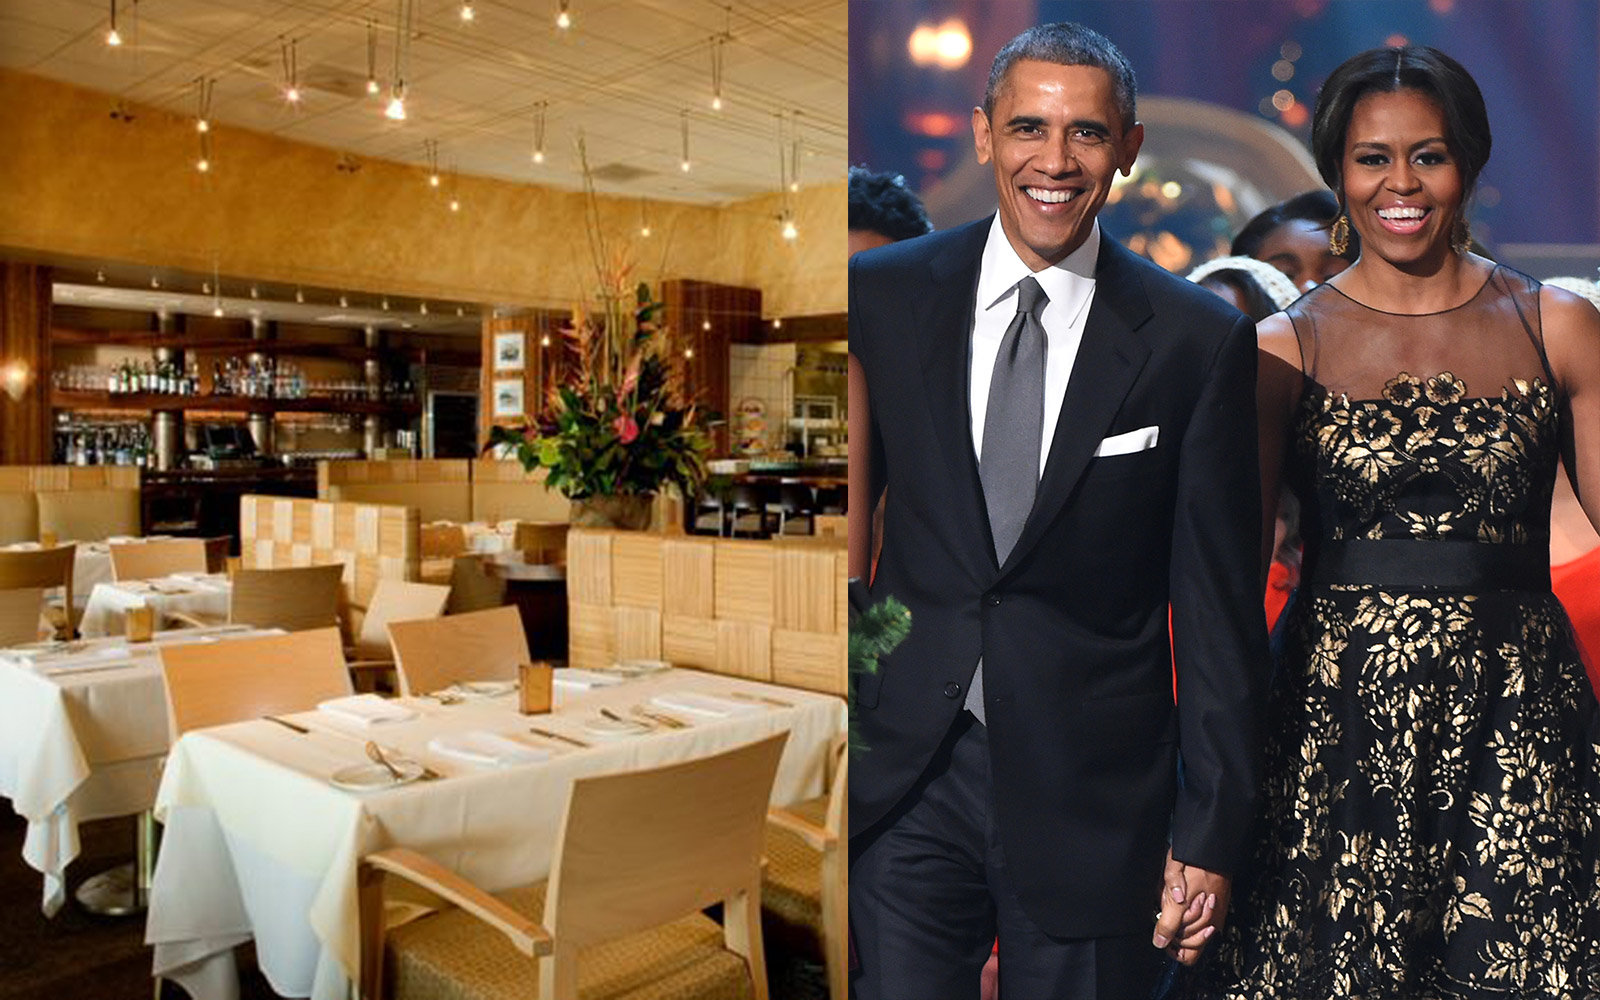 Want to Spot a Celebrity at Dinner? Here's Where You Should Make a Reservation